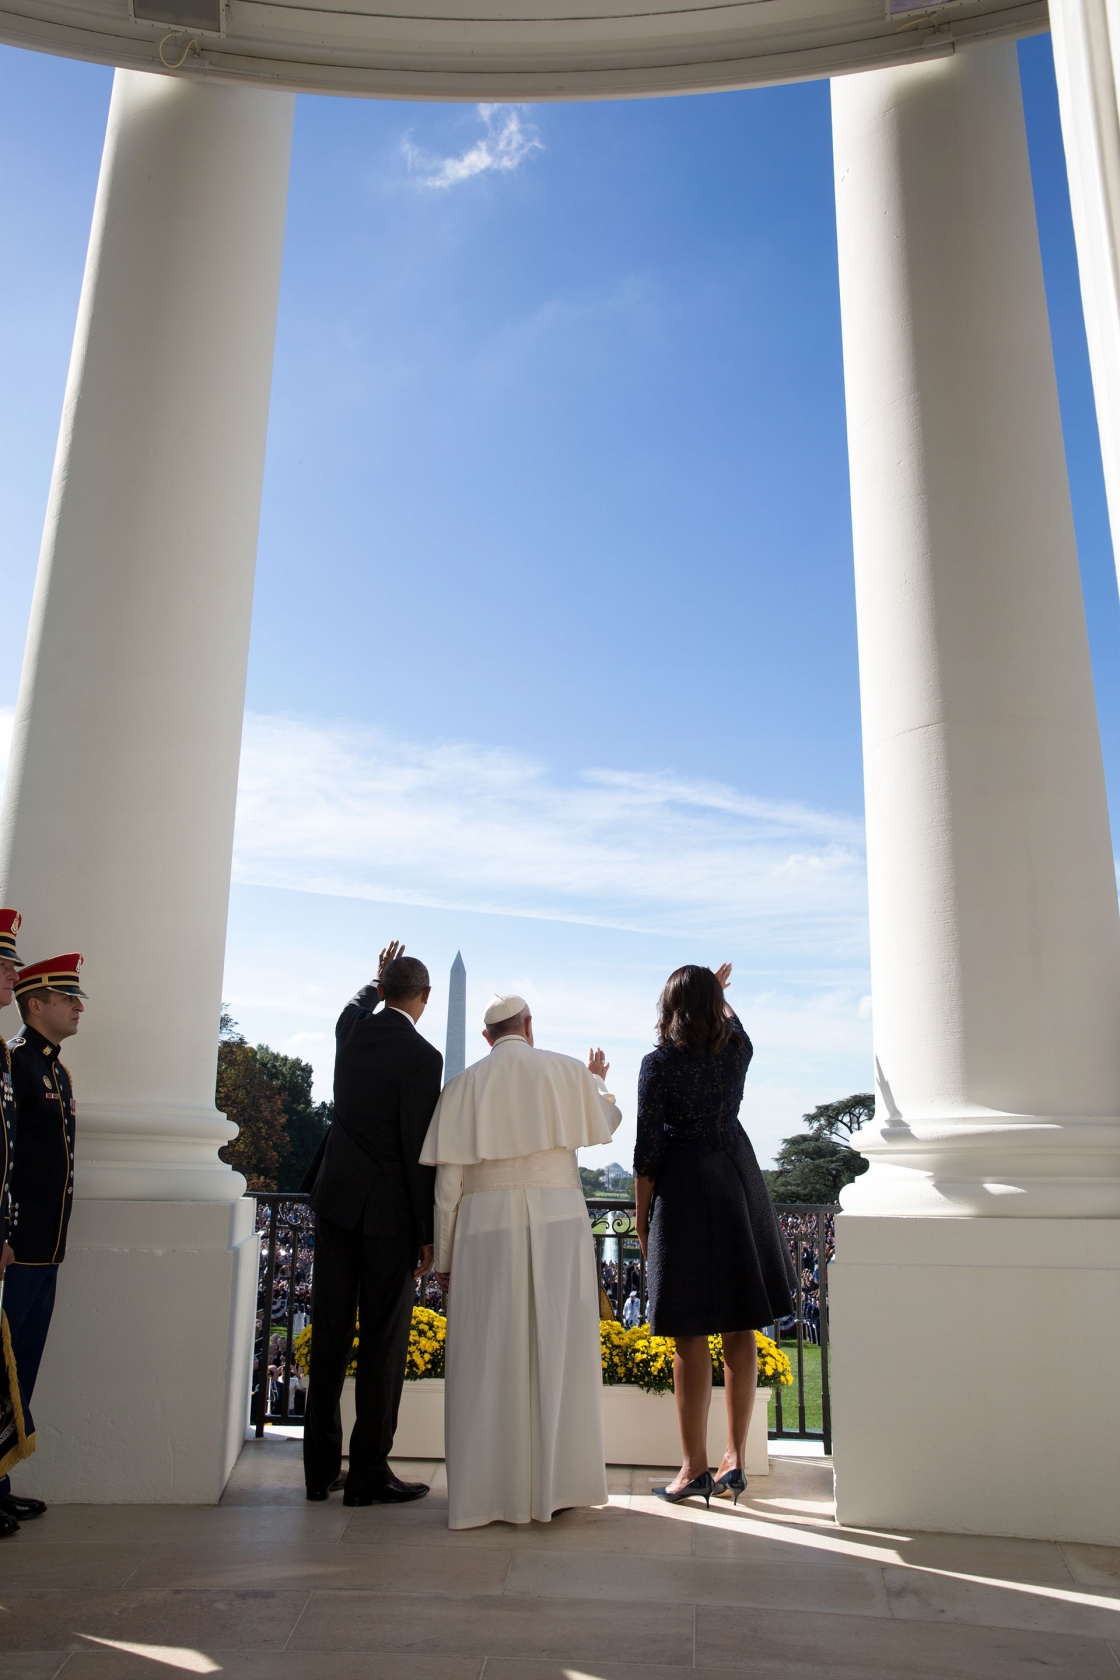 The Pope waves from the Blue Room Balcony with the President and First Lady. (Official White House Photo by Pete Souza)